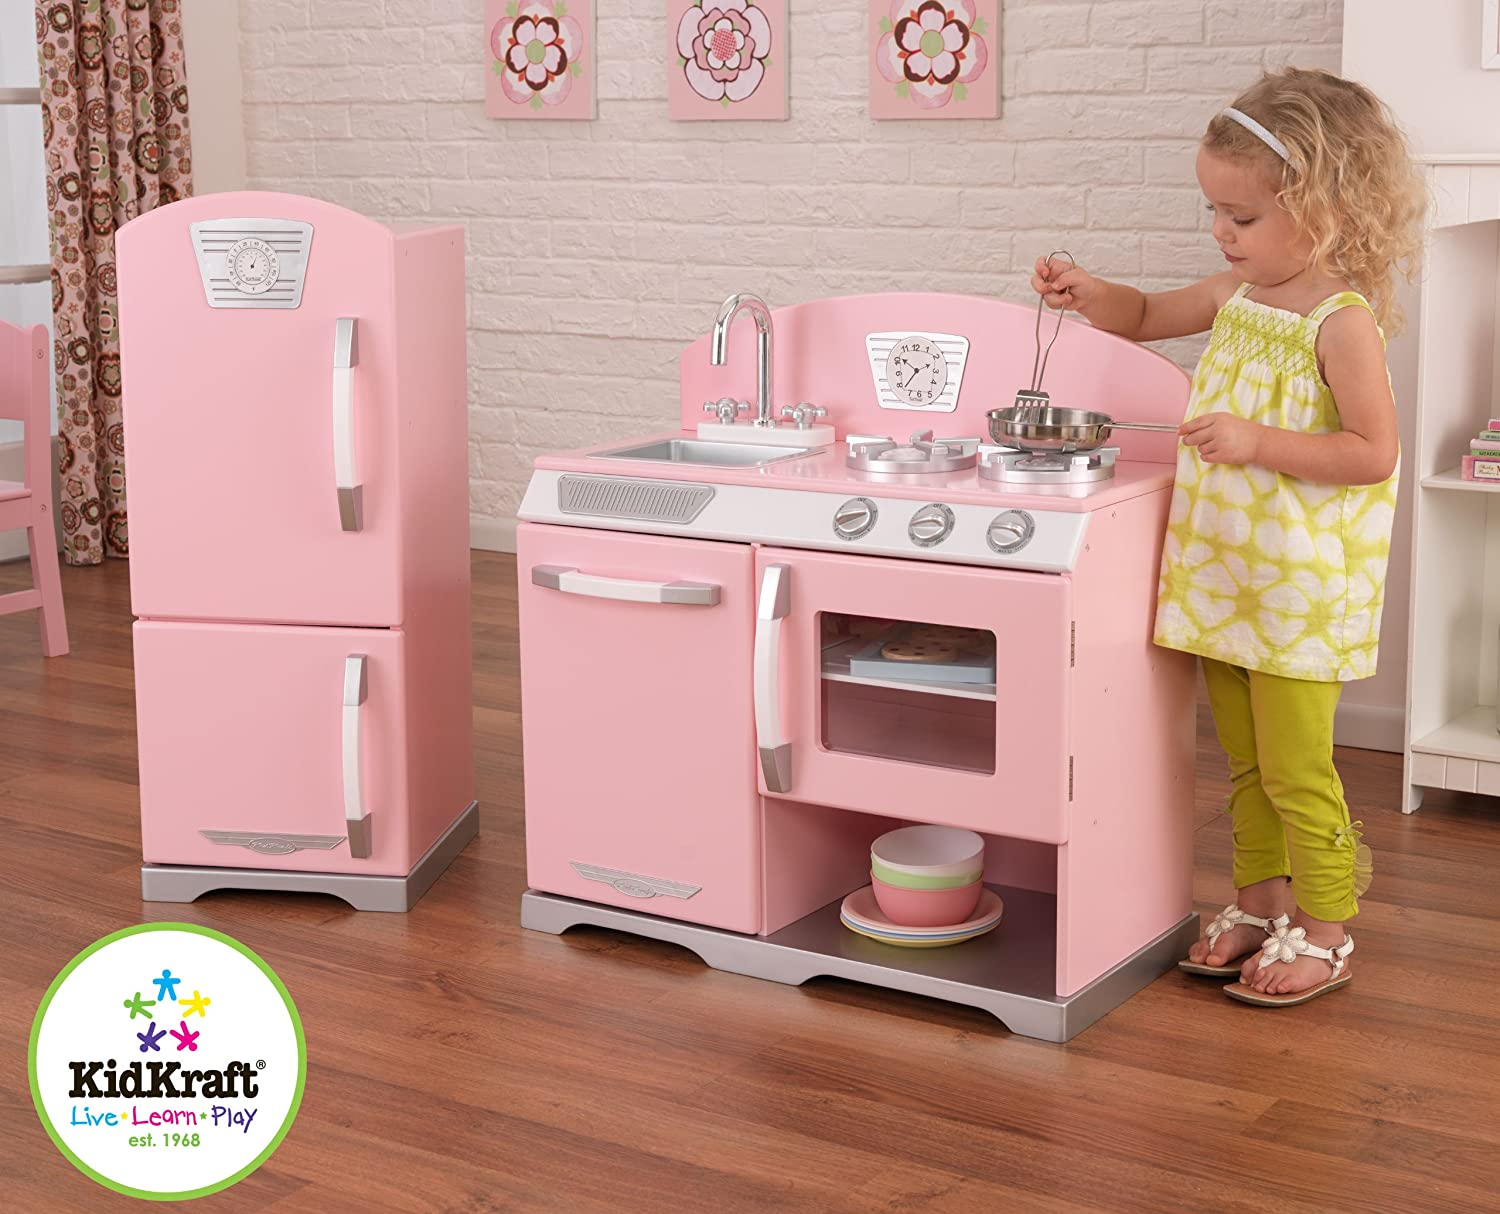 Amazon.com: Kidkraft Retro Kitchen and Refrigerator in Pink: Toys ...